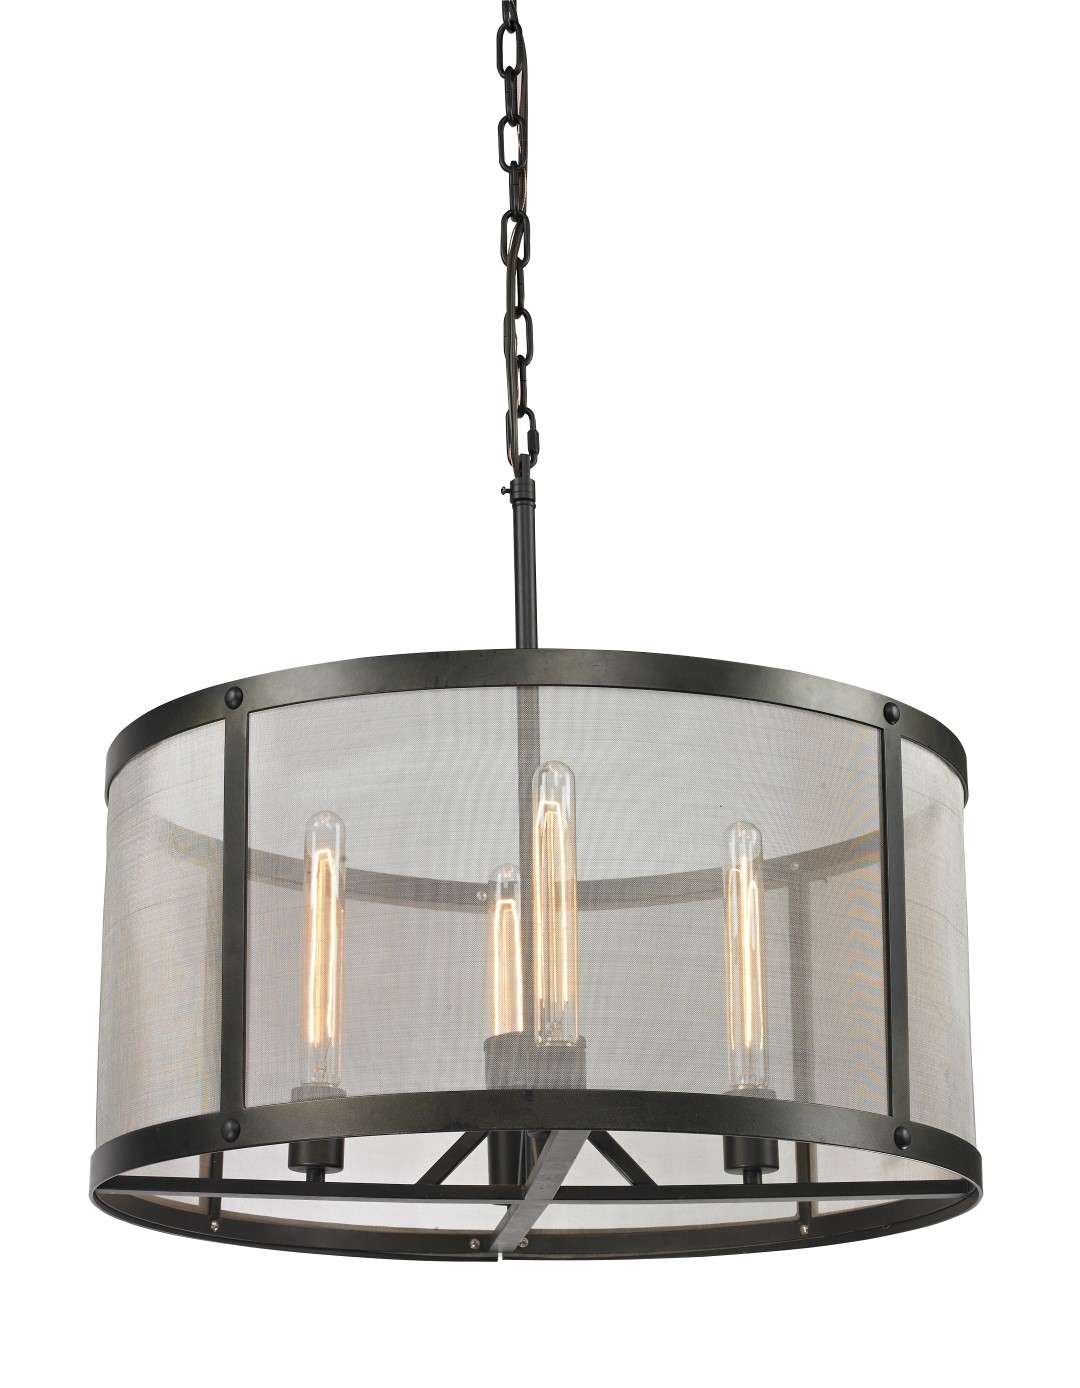 The Charleston Mesh Chandelier Provides A Warm And Inviting Intended For Lucinda Branch Chandelier (View 14 of 15)